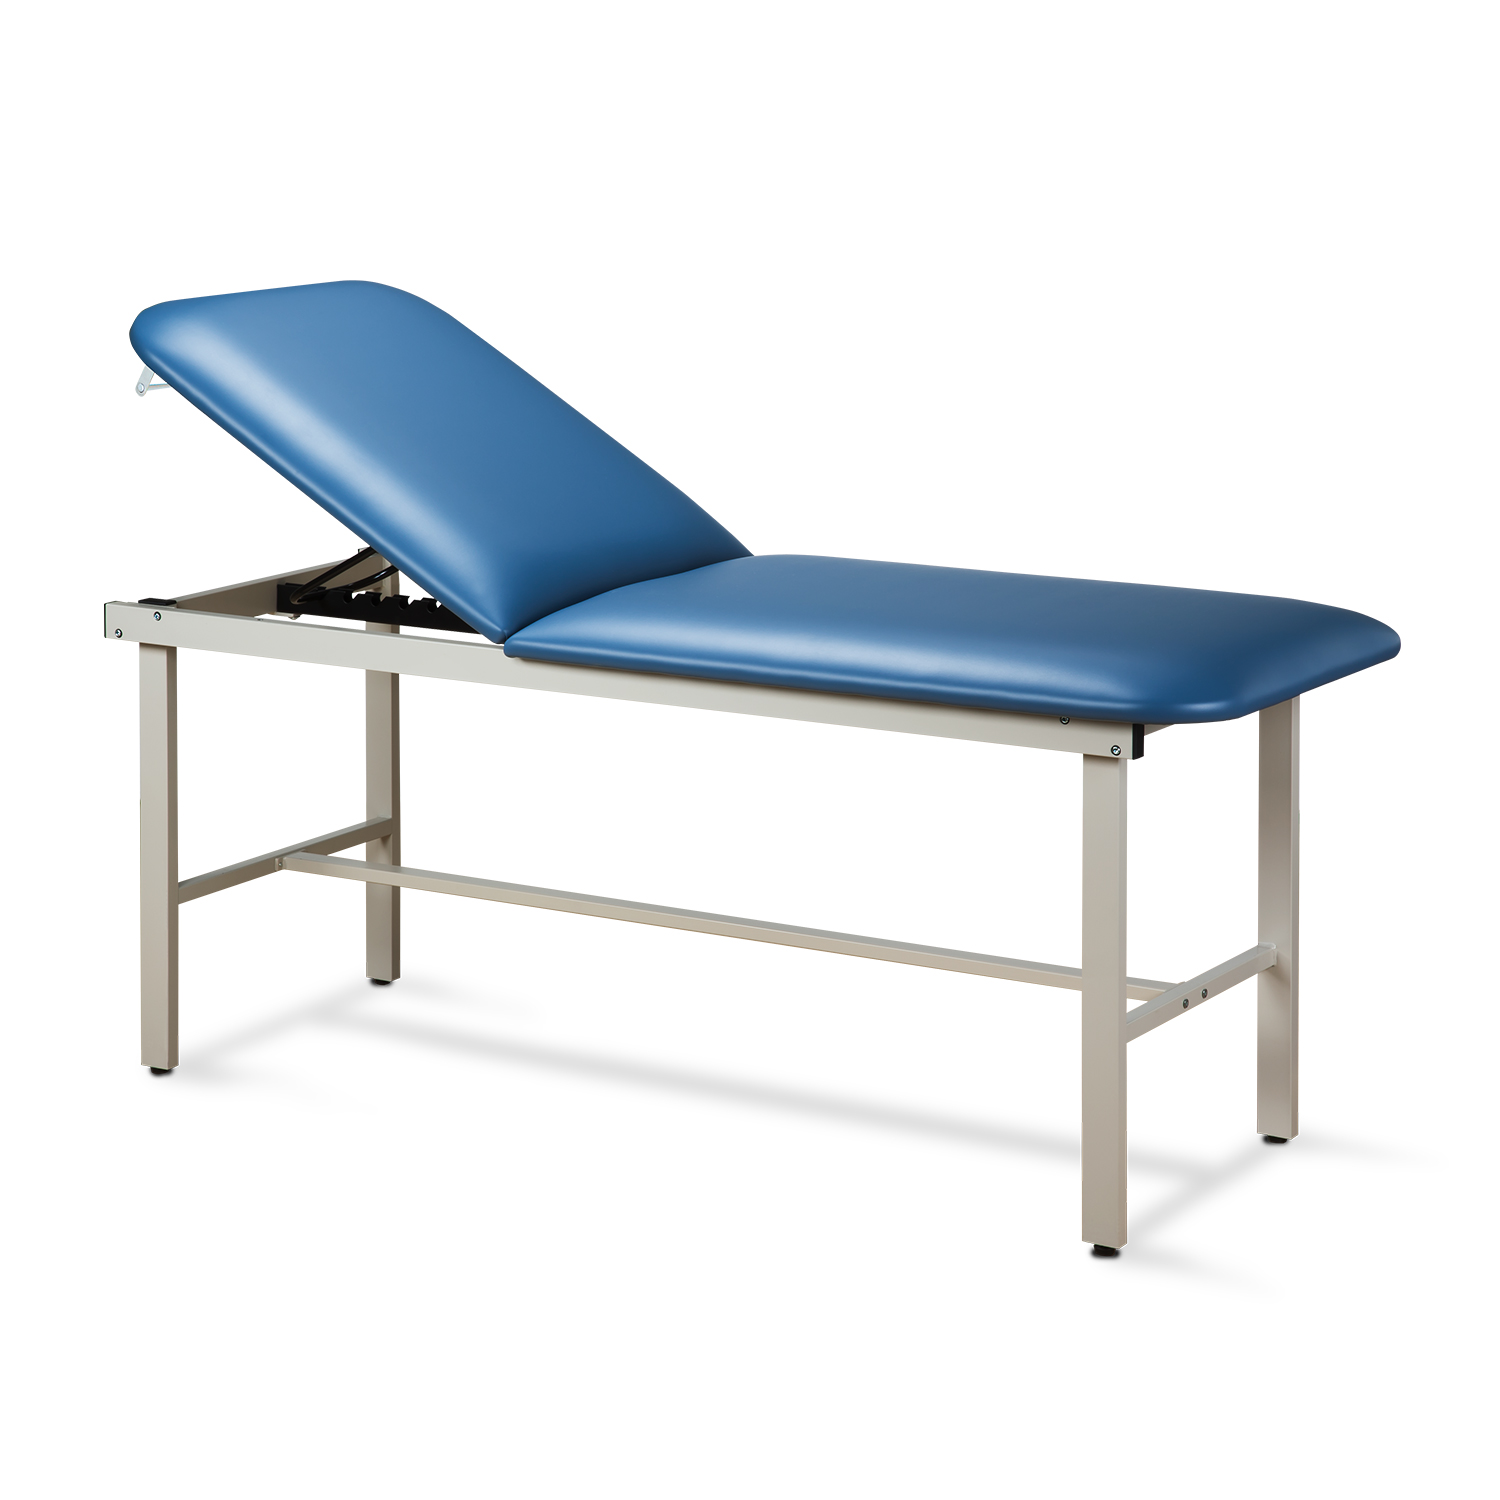 Clinton ETA Alpha Series Treatment Table with H-Brace - 3010